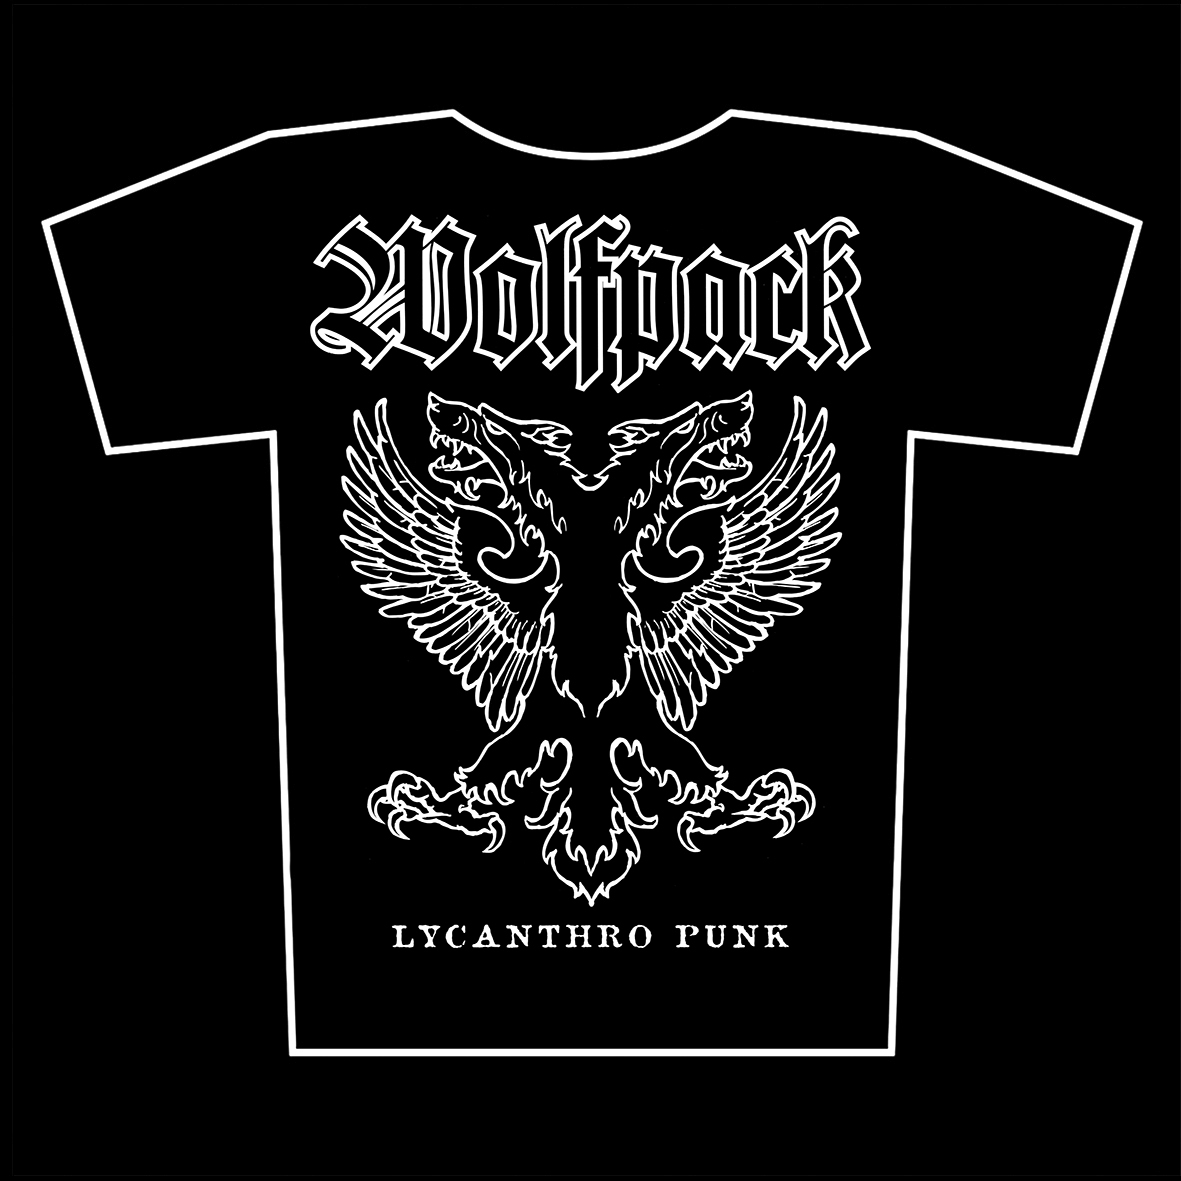 WOLFPACK – Lycanthro Punk – t-shirts available again